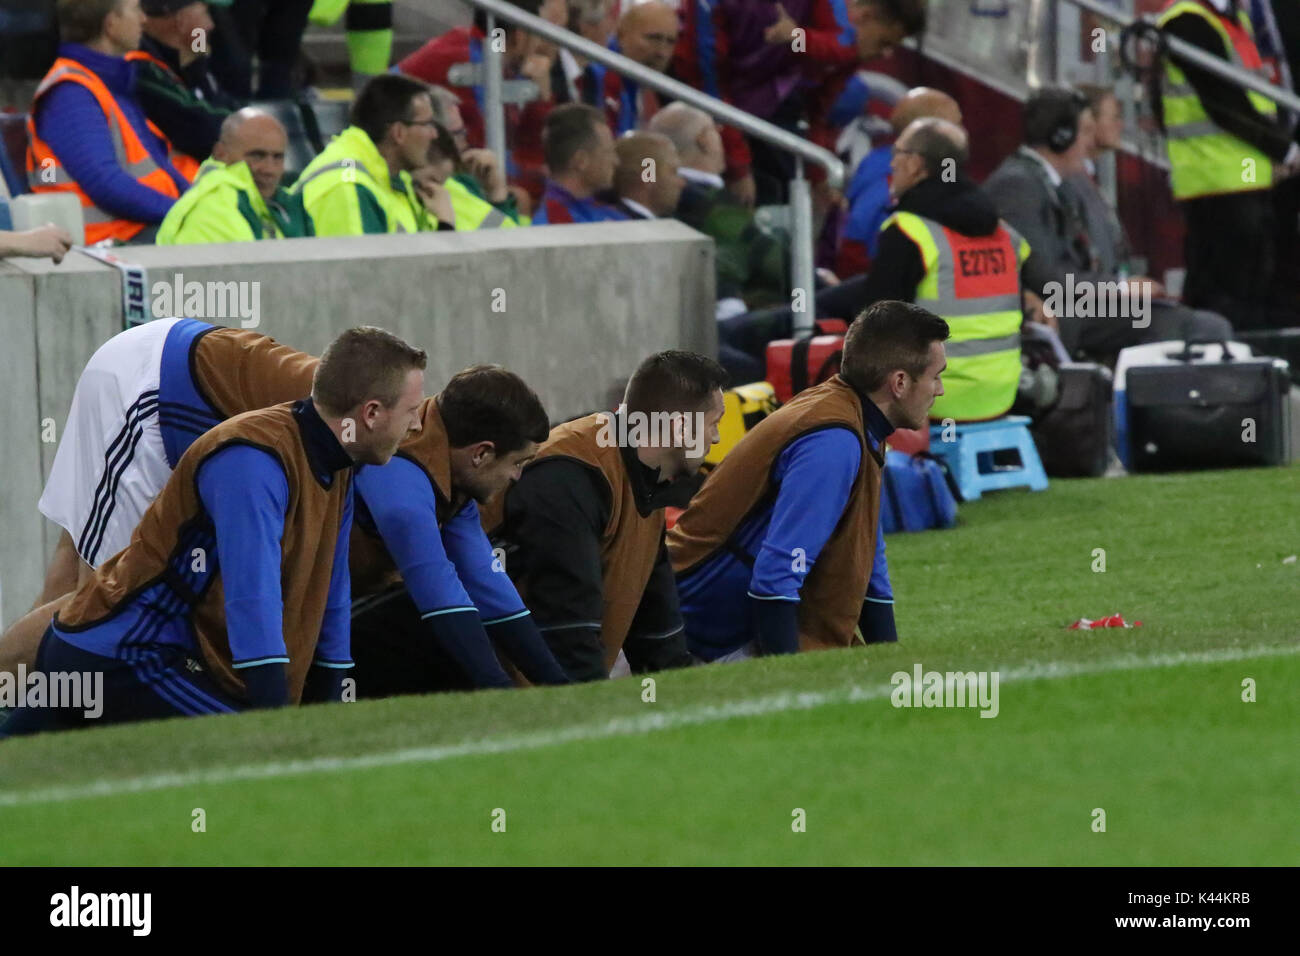 National Football Stadium at Windsor Park, Belfast, Northern Ireland. 04 September 2017.2018 World Cup Qualifier - Northern Ireland v Czech Republic. The Northern ireland substitutes watch the match unfold during their warm-up. Credit: David Hunter/Alamy Live News. - Stock Image